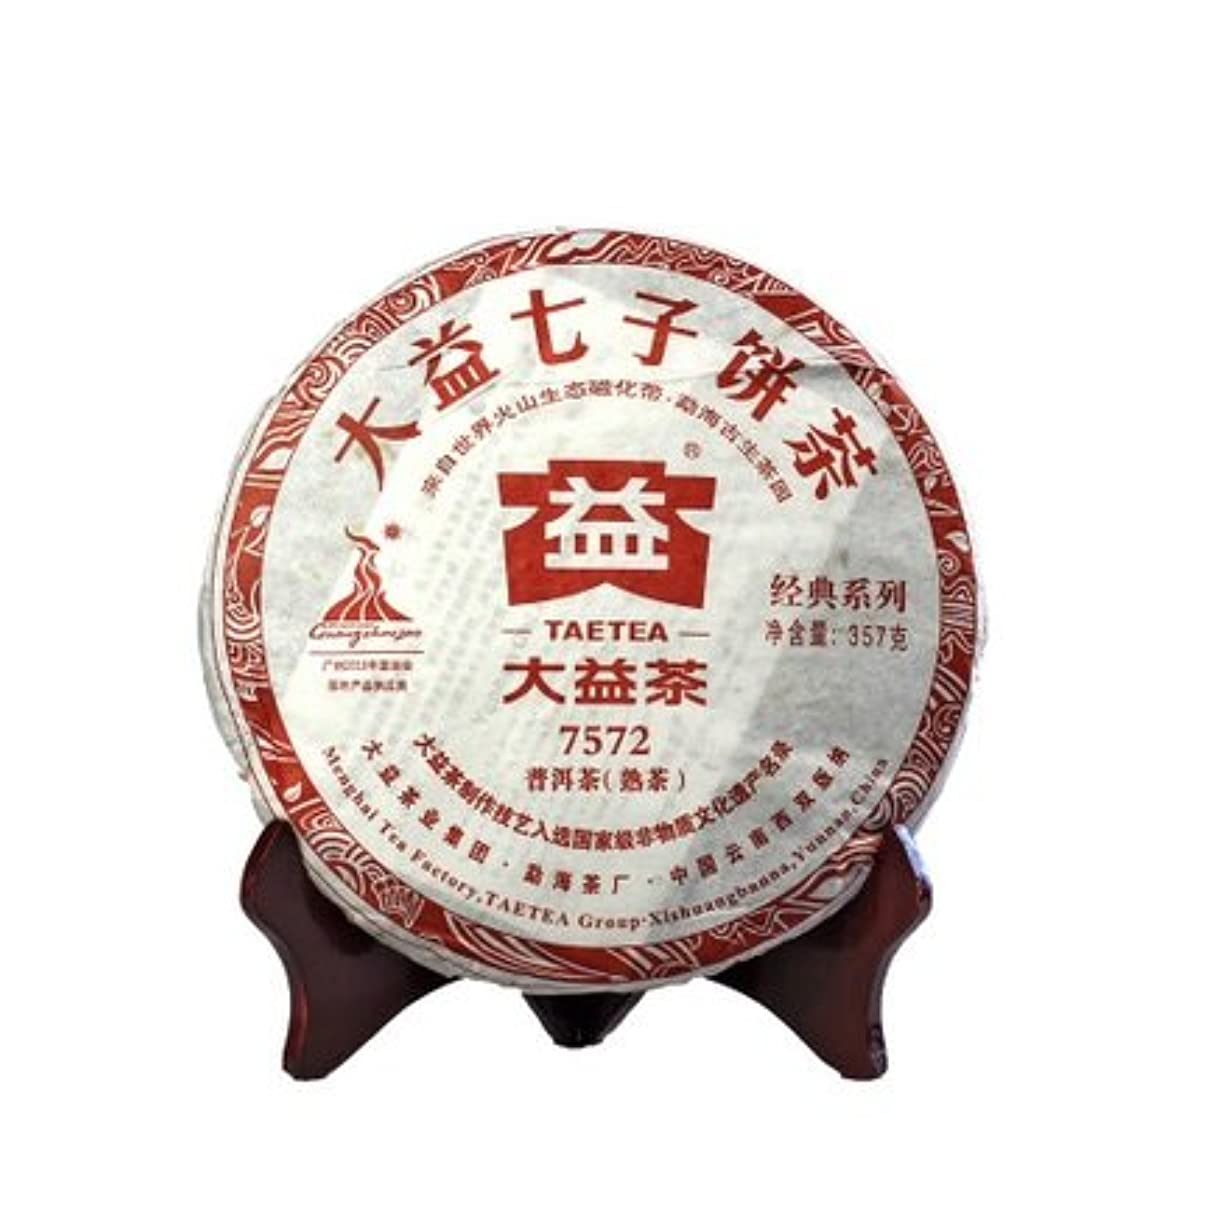 AmaranTeen - puer tea 7572 001 China puerh 2010 year 357g Chinese yunnan ripe tea pu er health care pu erh the tea for weight loss products